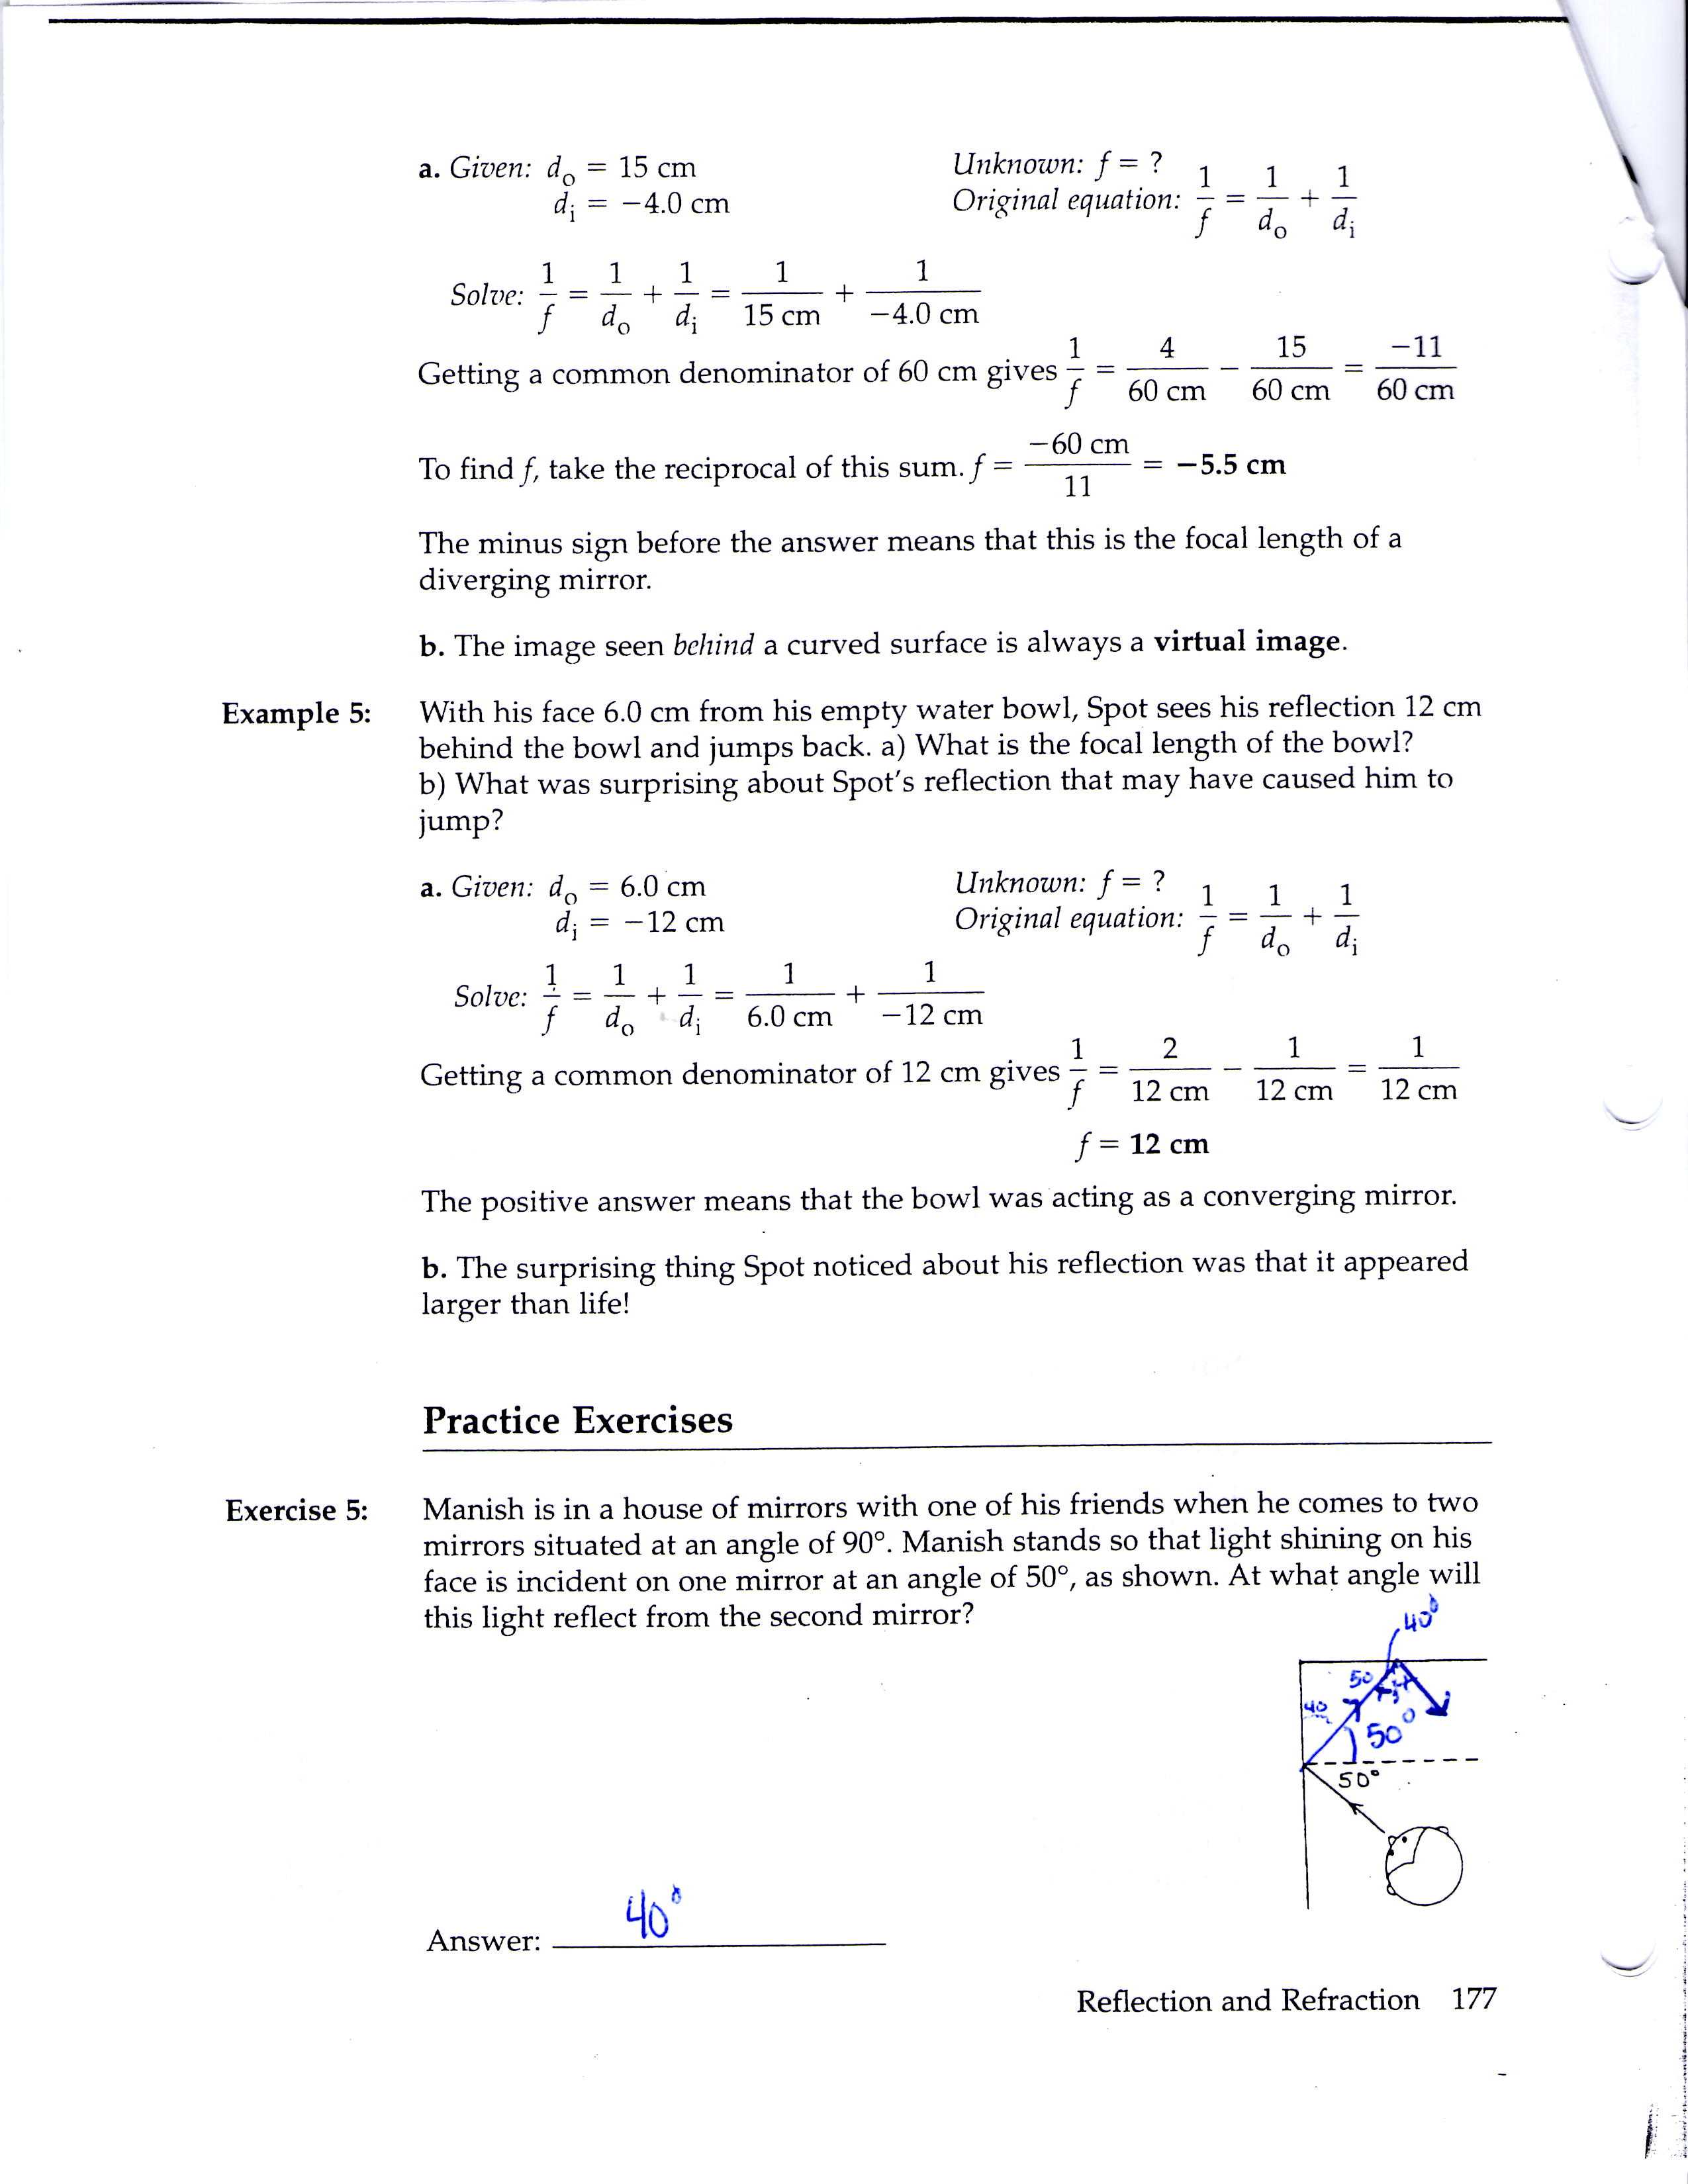 Waves Worksheet Answers Physics Classroom - Nidecmege